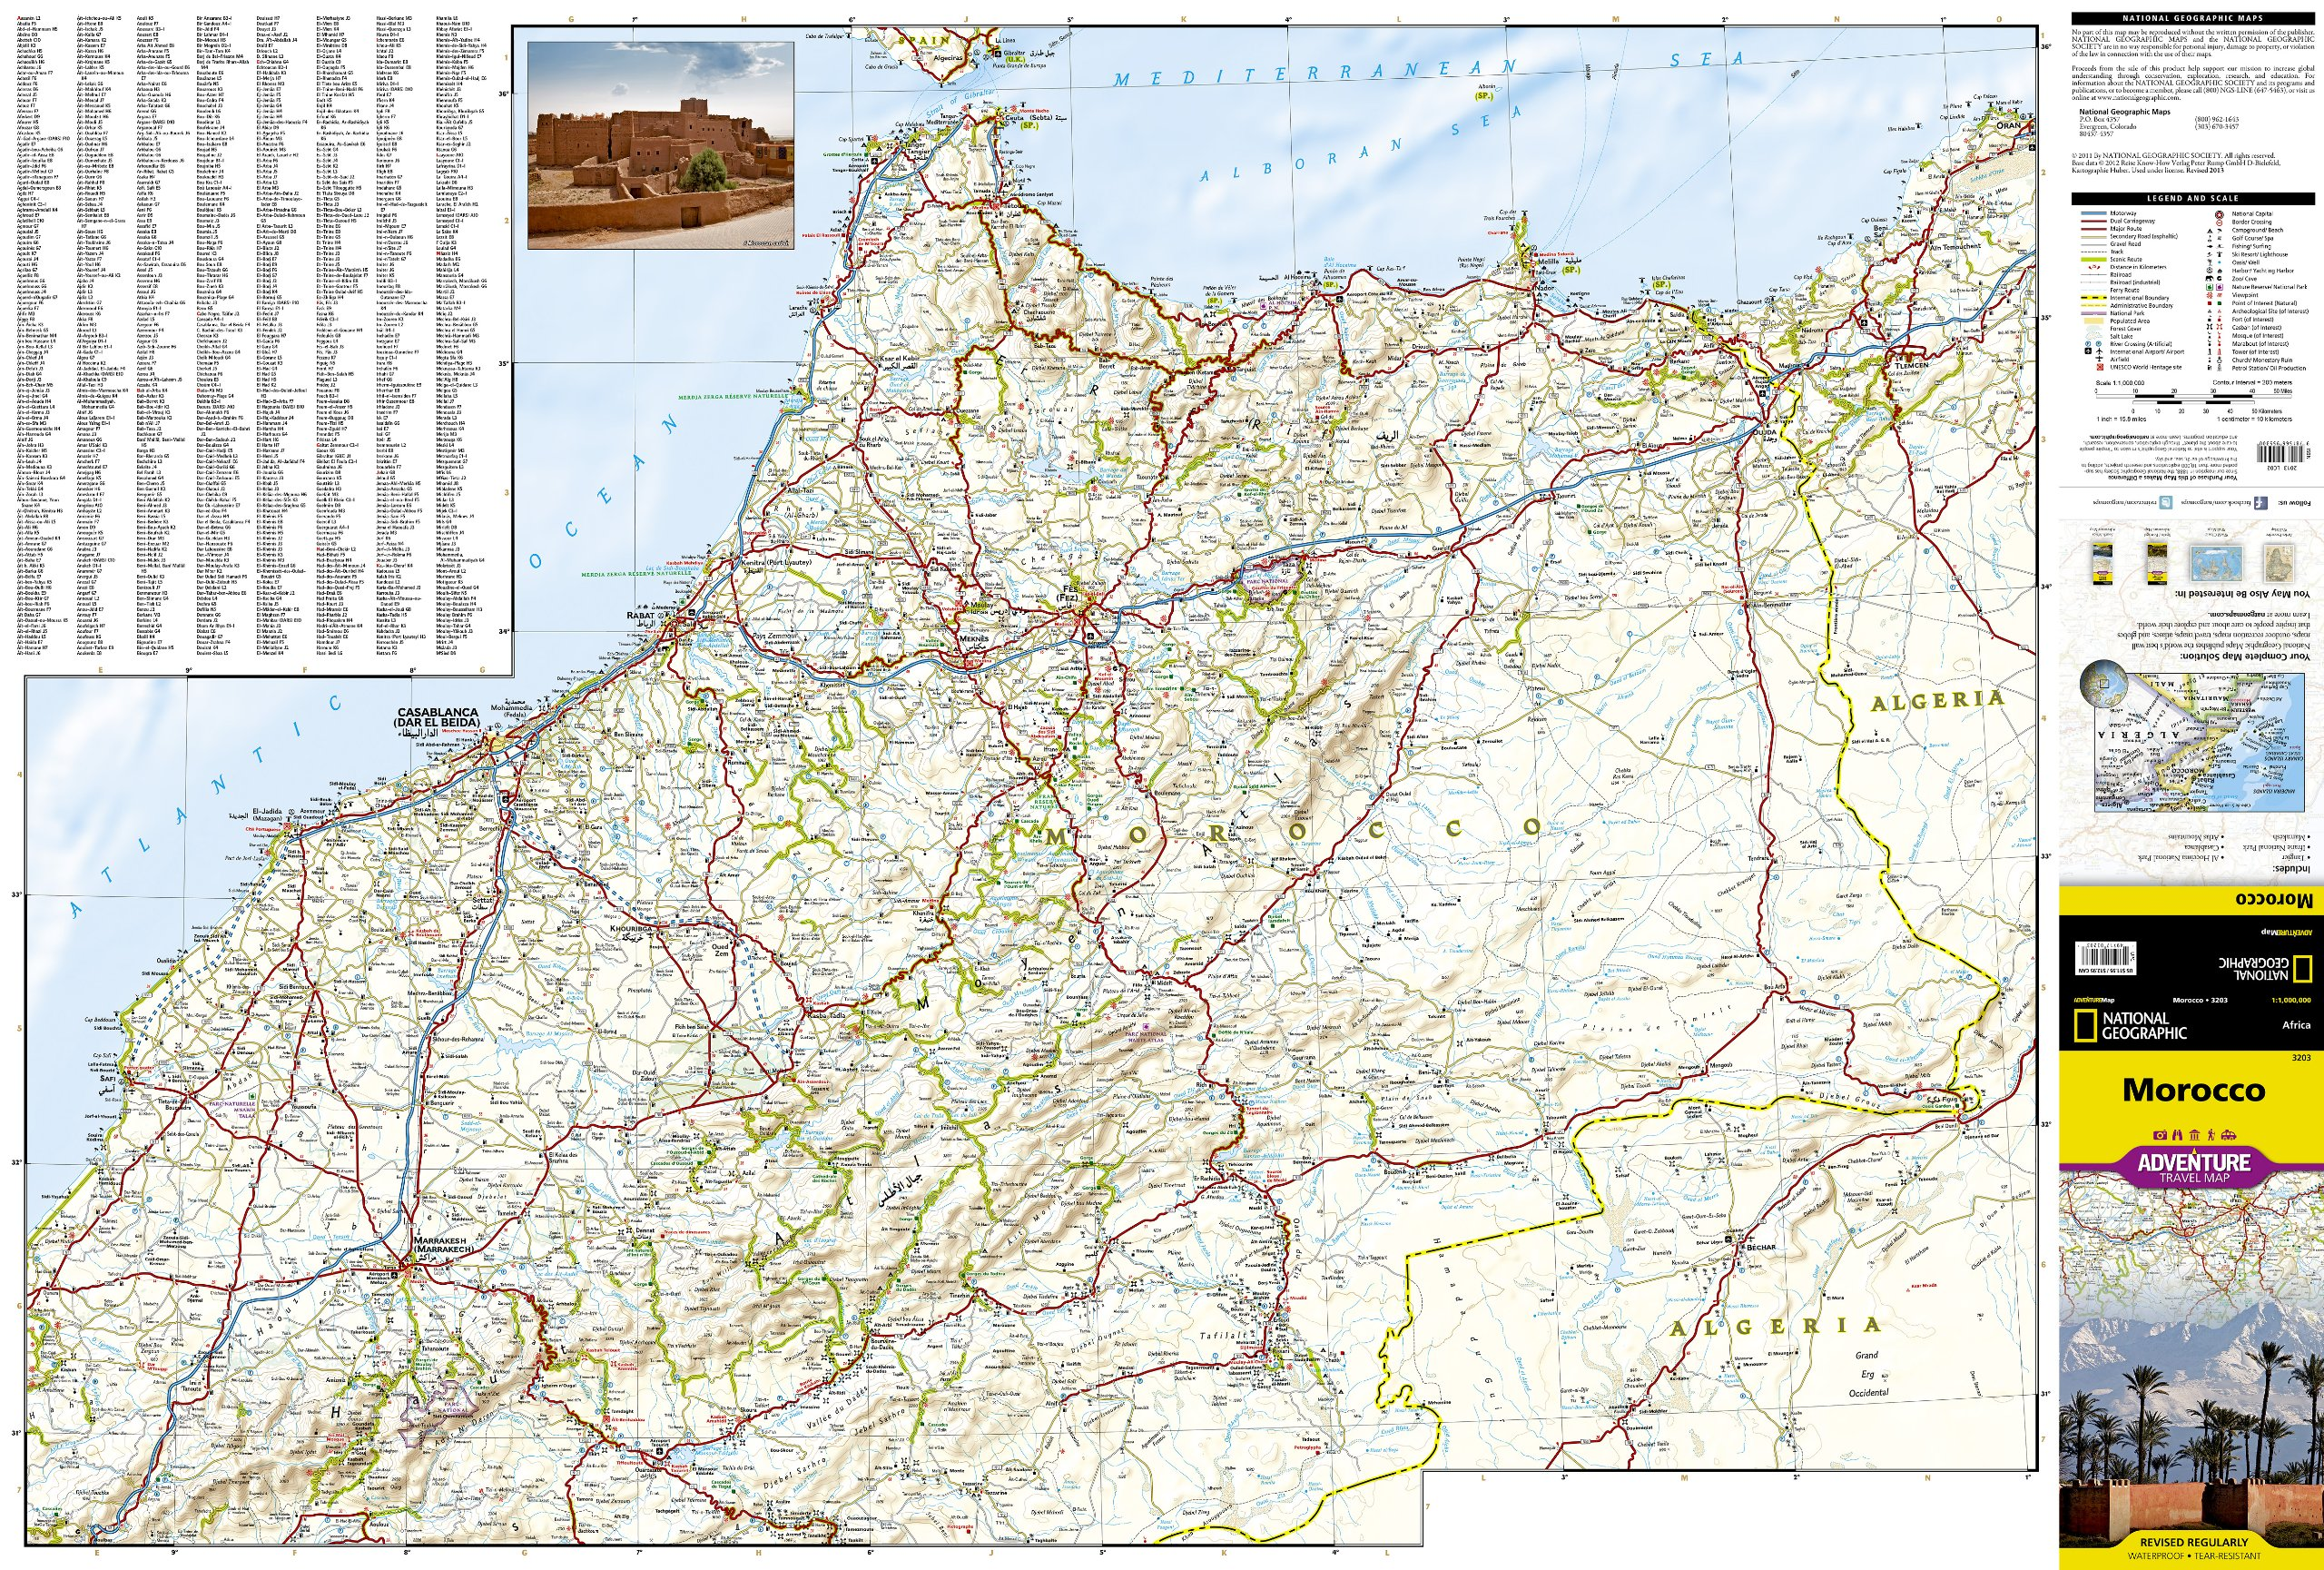 Morocco National Geographic Adventure Map National Geographic